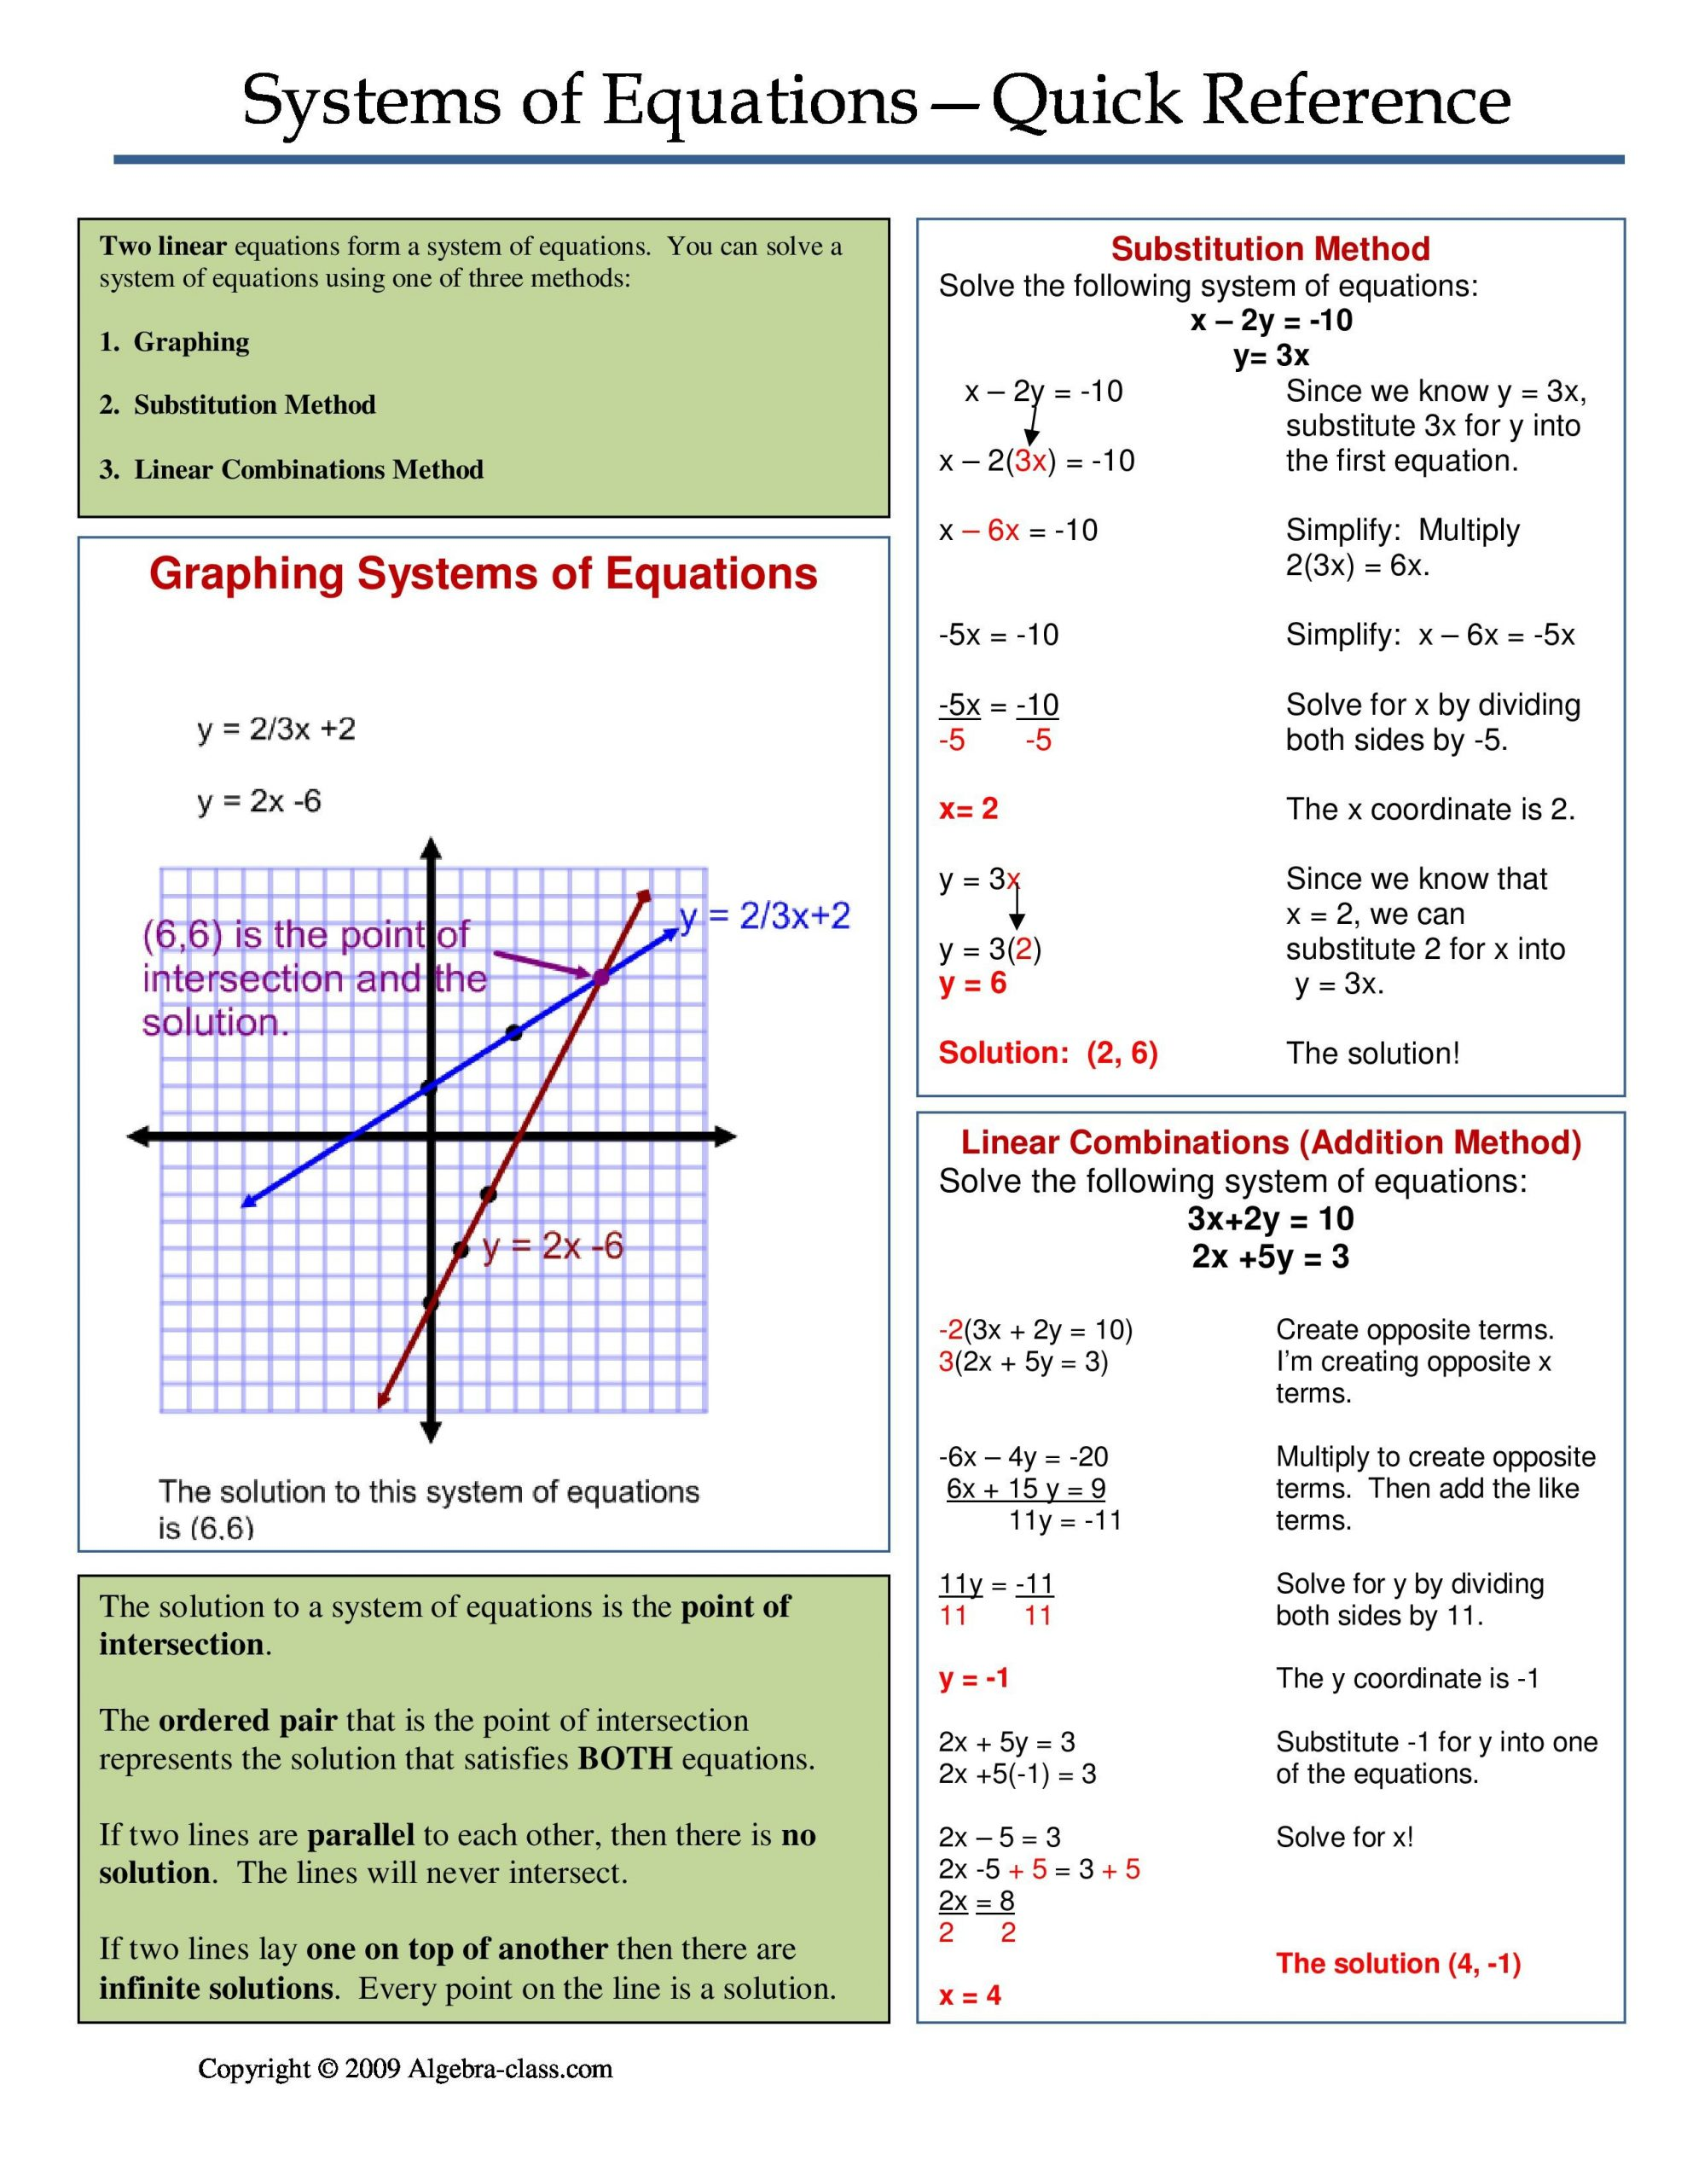 Systems Of Equations Review Worksheet E Page Notes Worksheet for Systems Of Equations Unit